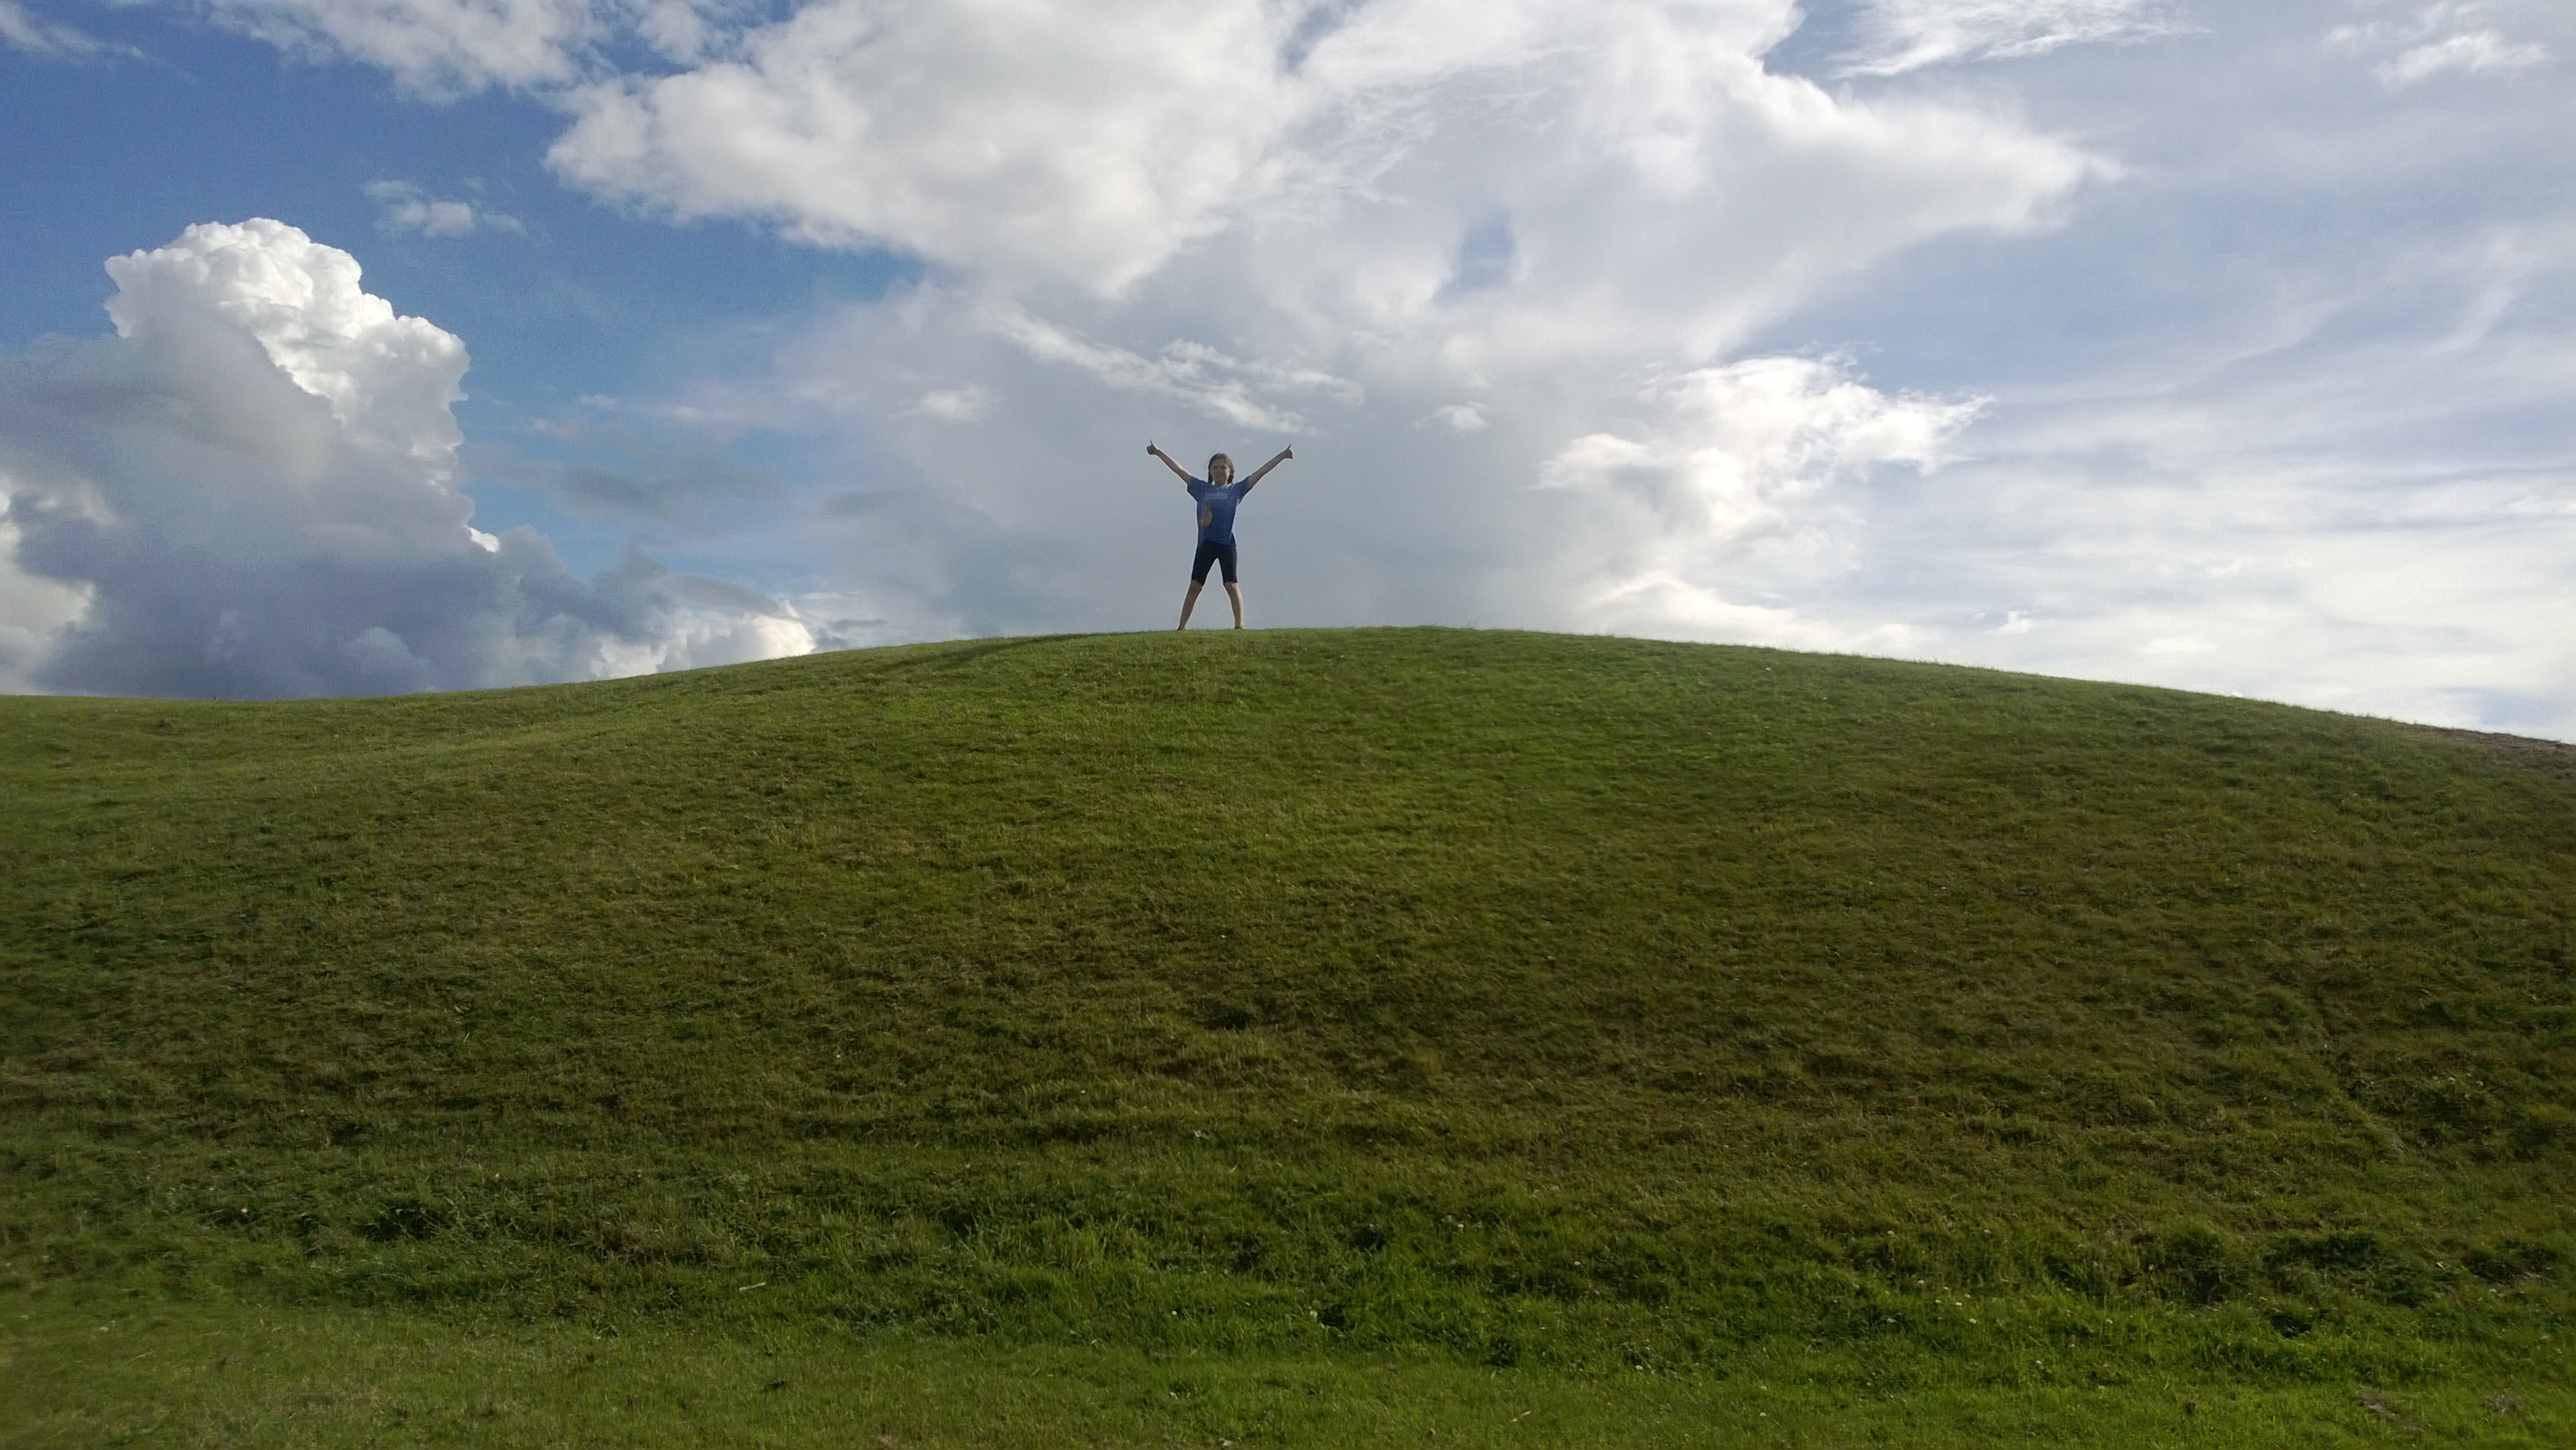 The Role of the Hill in Children's Summer Holidays | DEBBIE YOUNG39;S